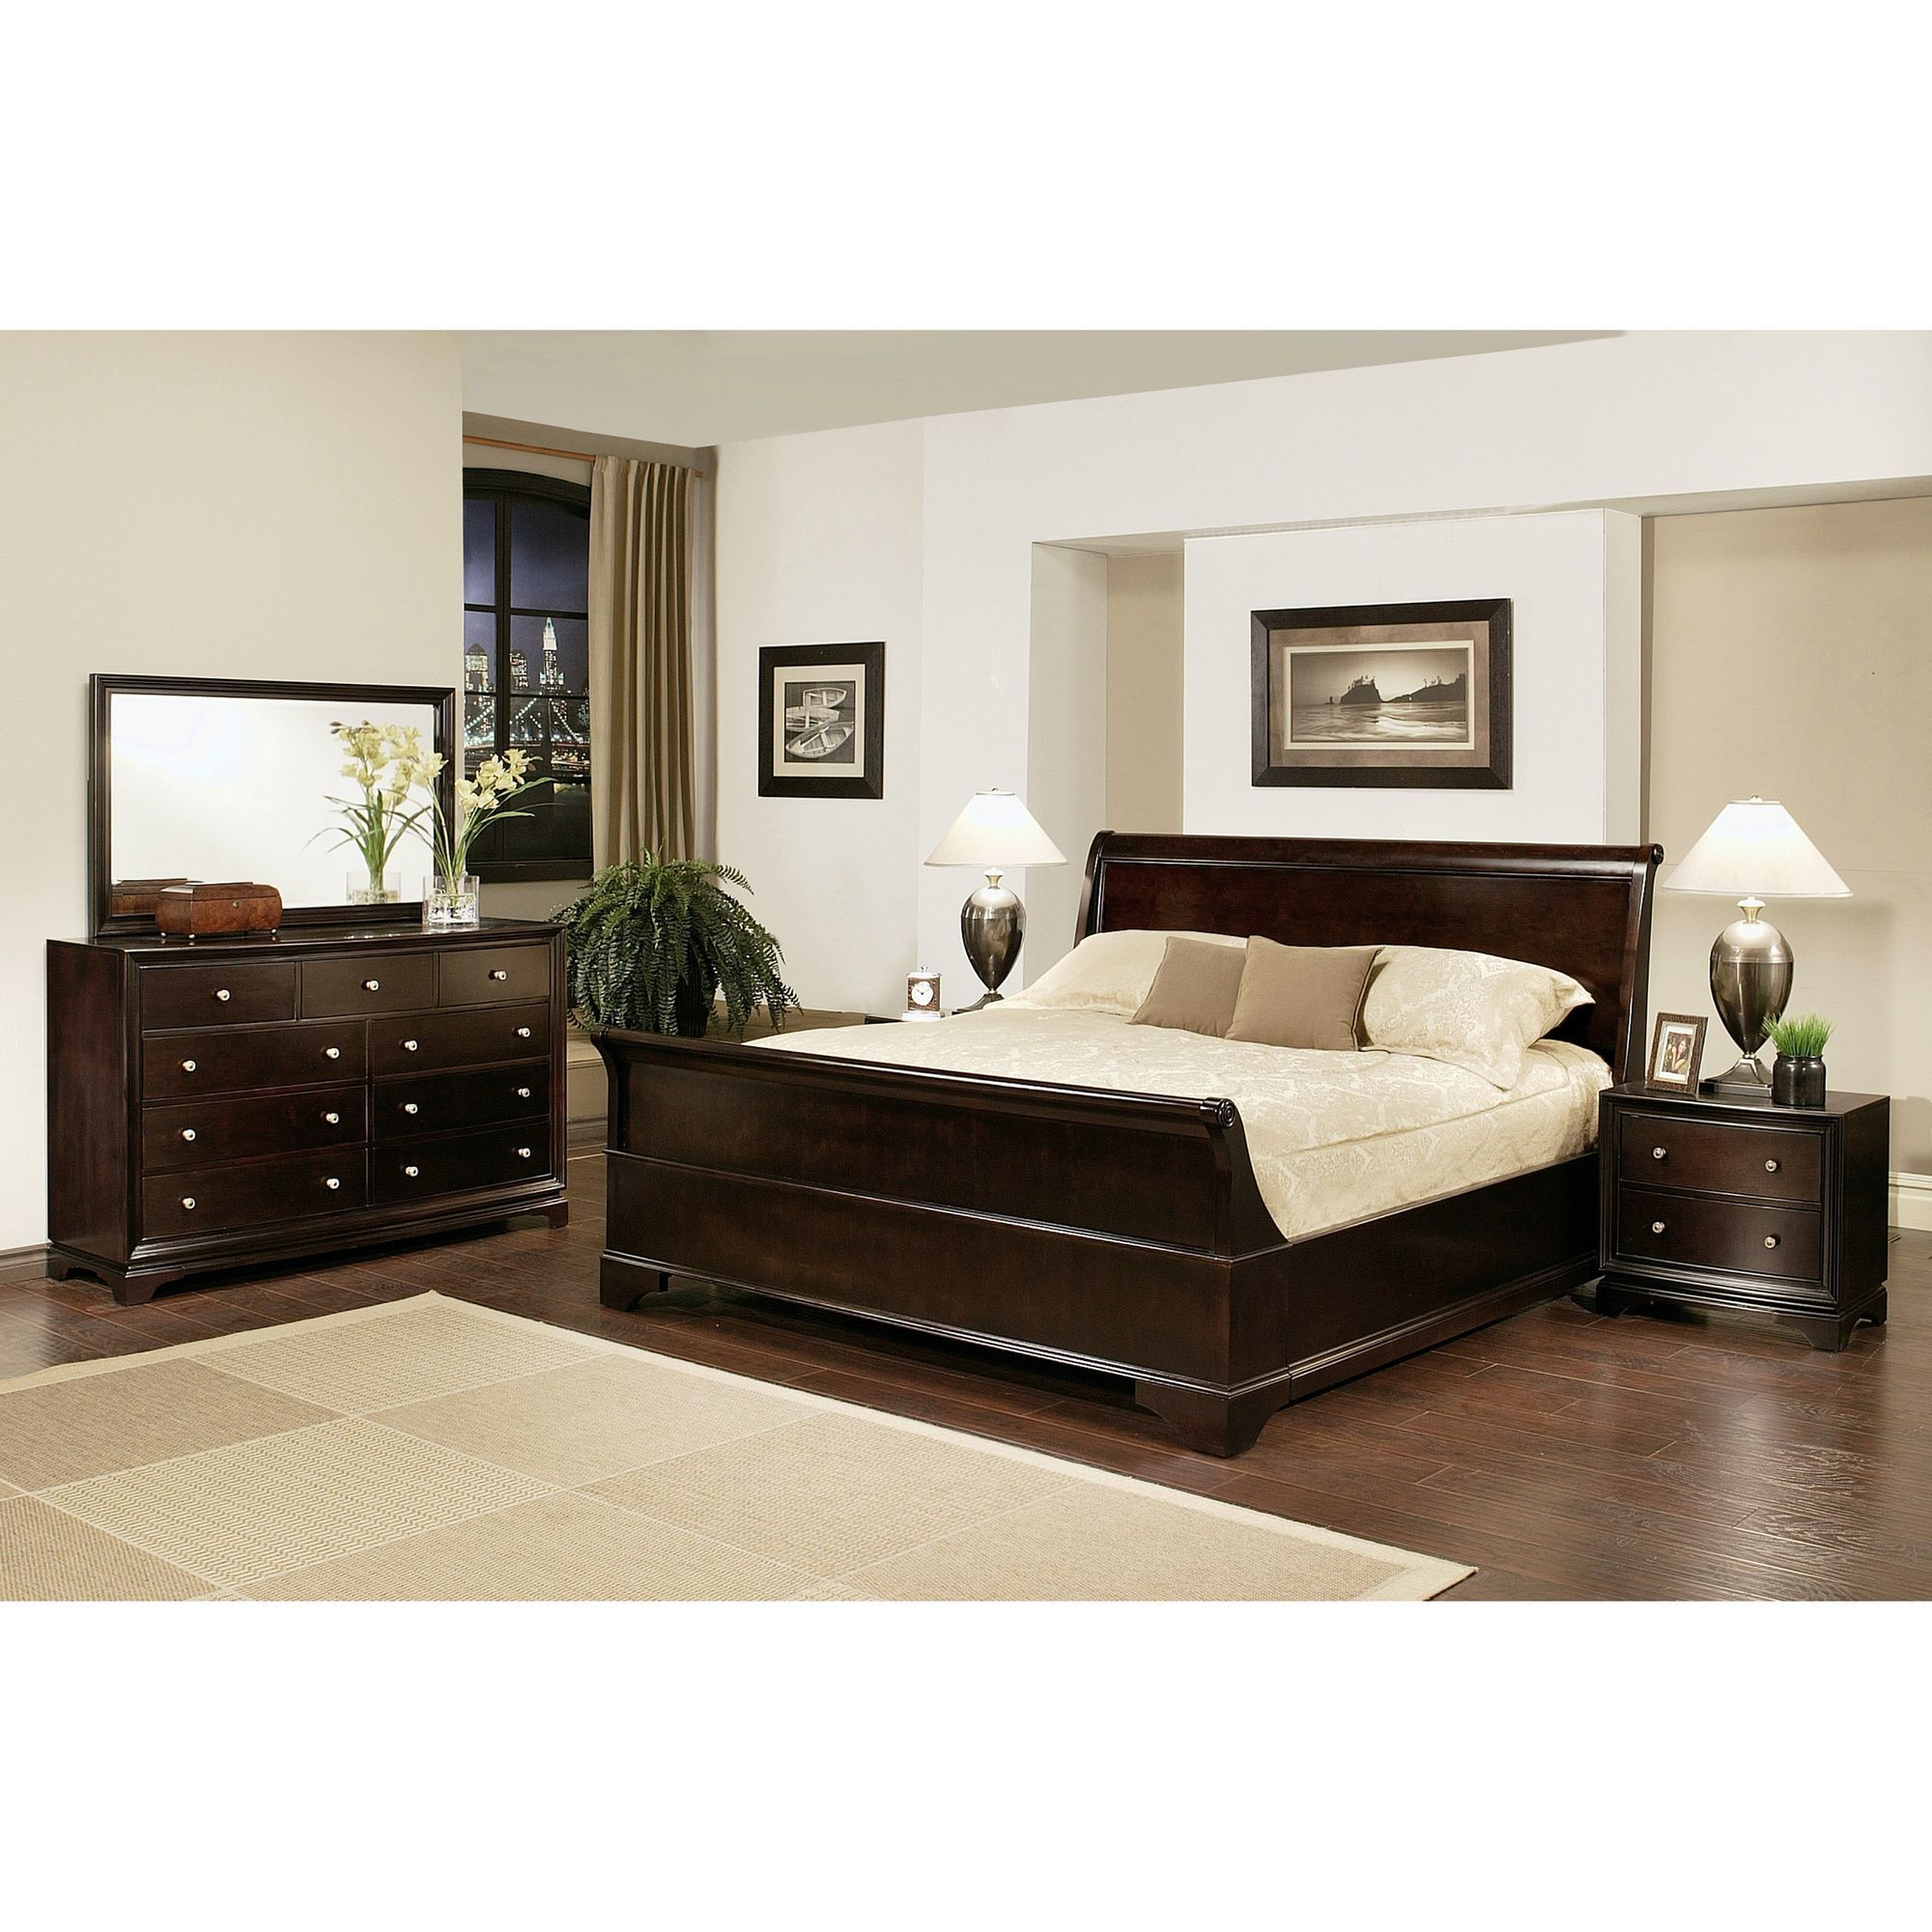 Master Bedroom Kingston enrich your home decor with this kingston king-size sleigh bedroom